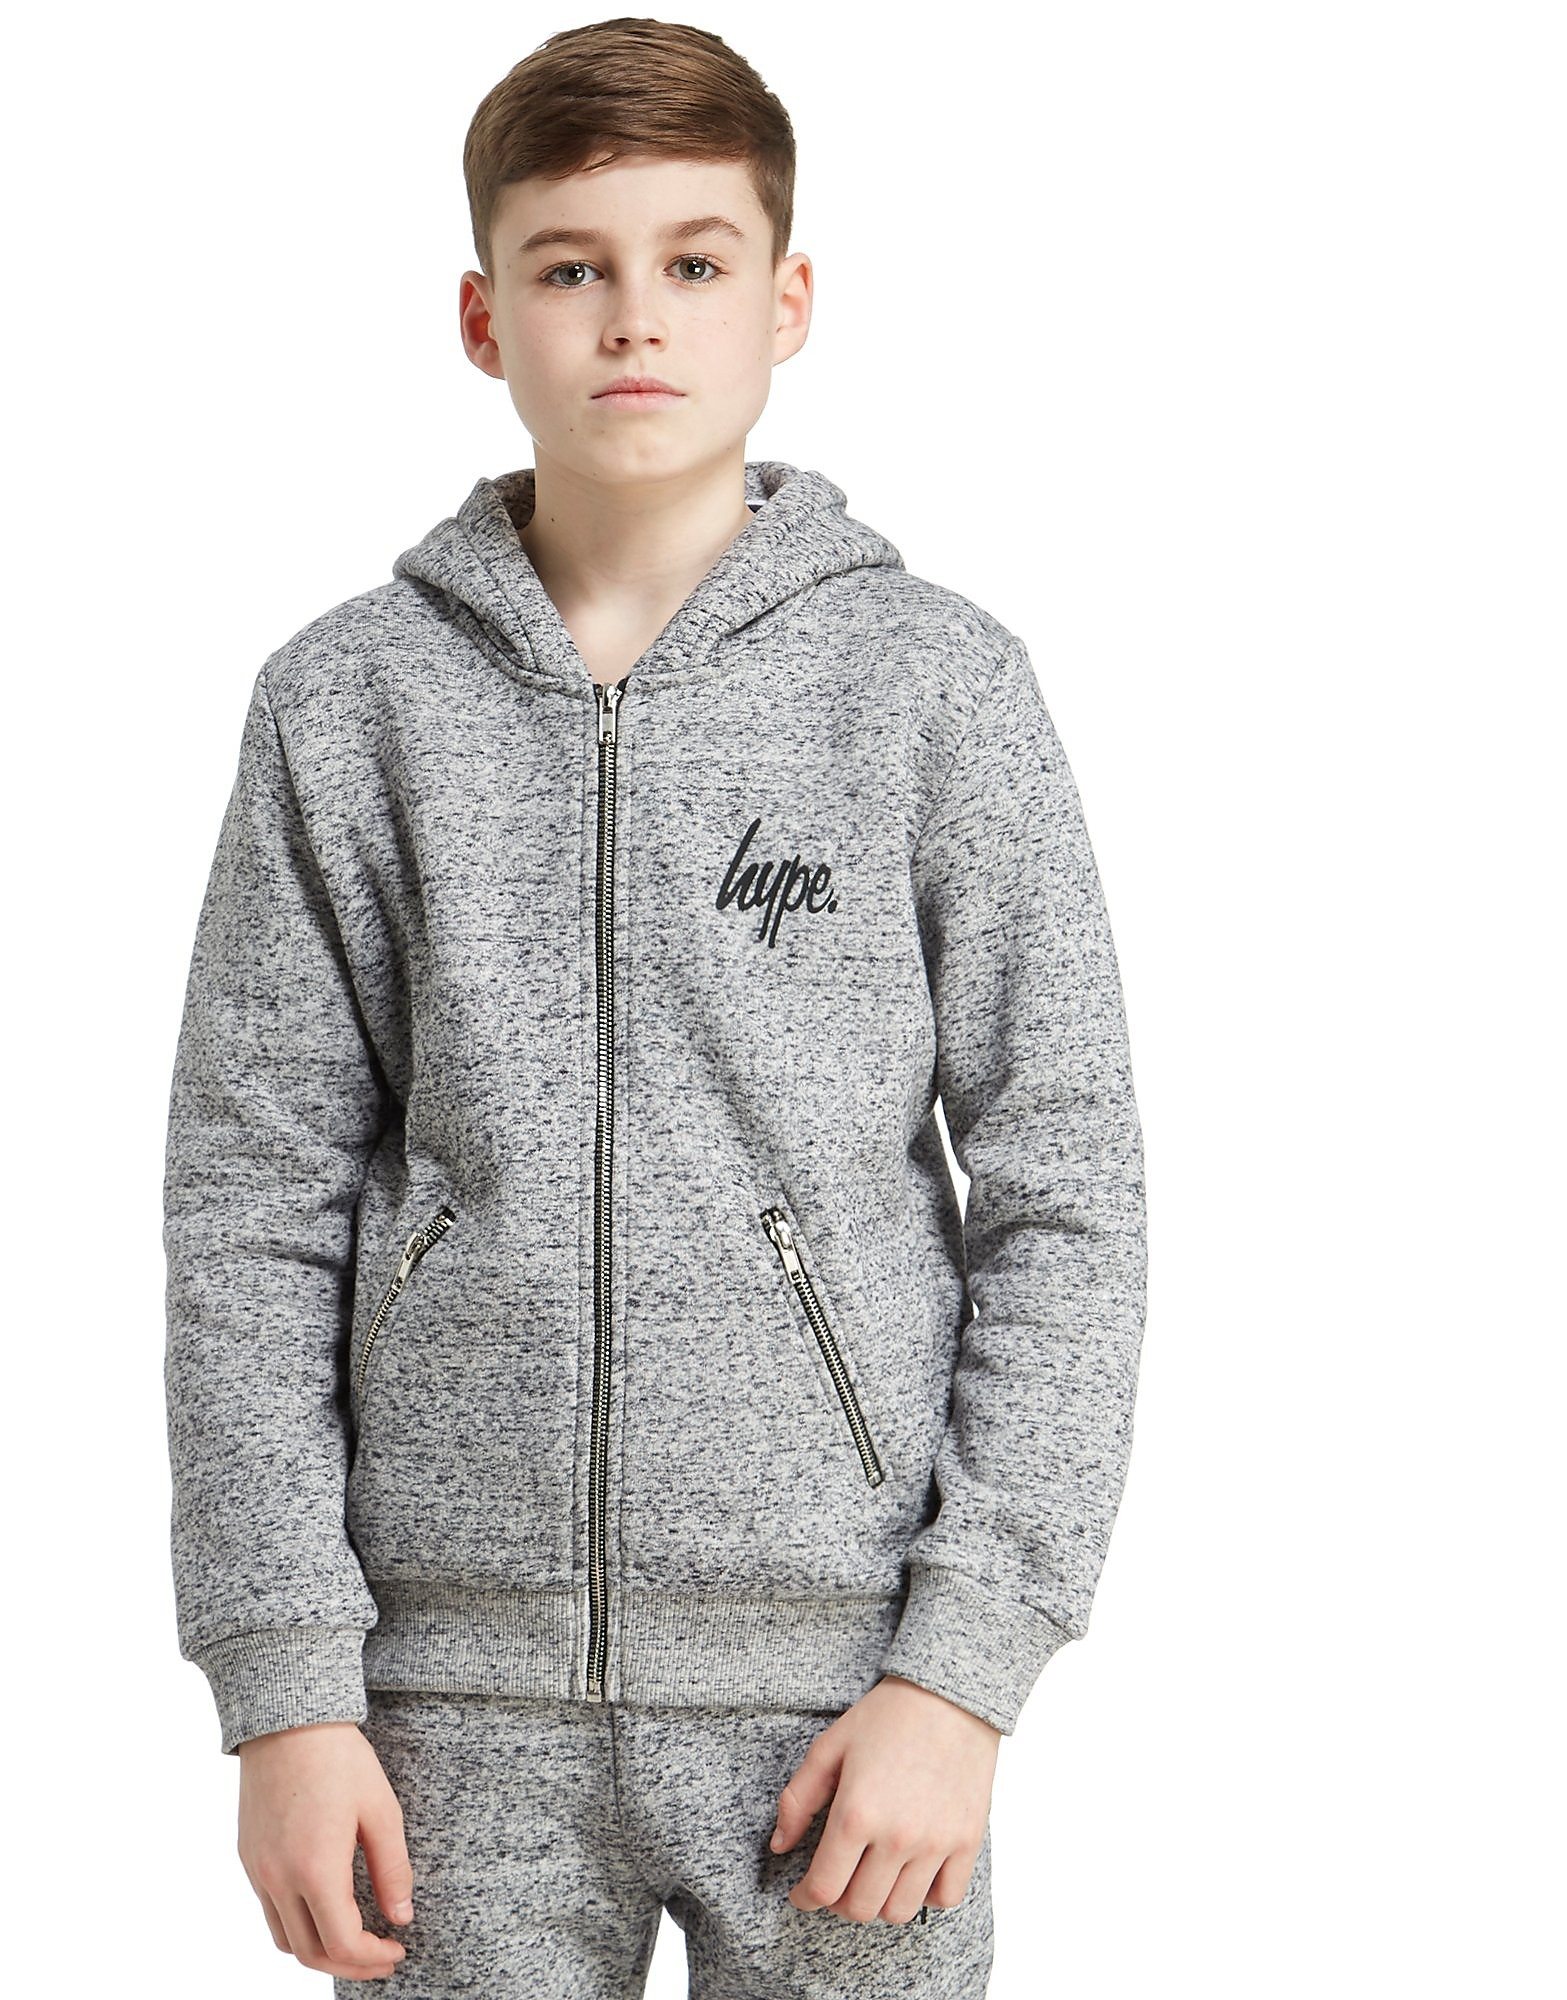 Hype Zip Pocket Hoody Junior